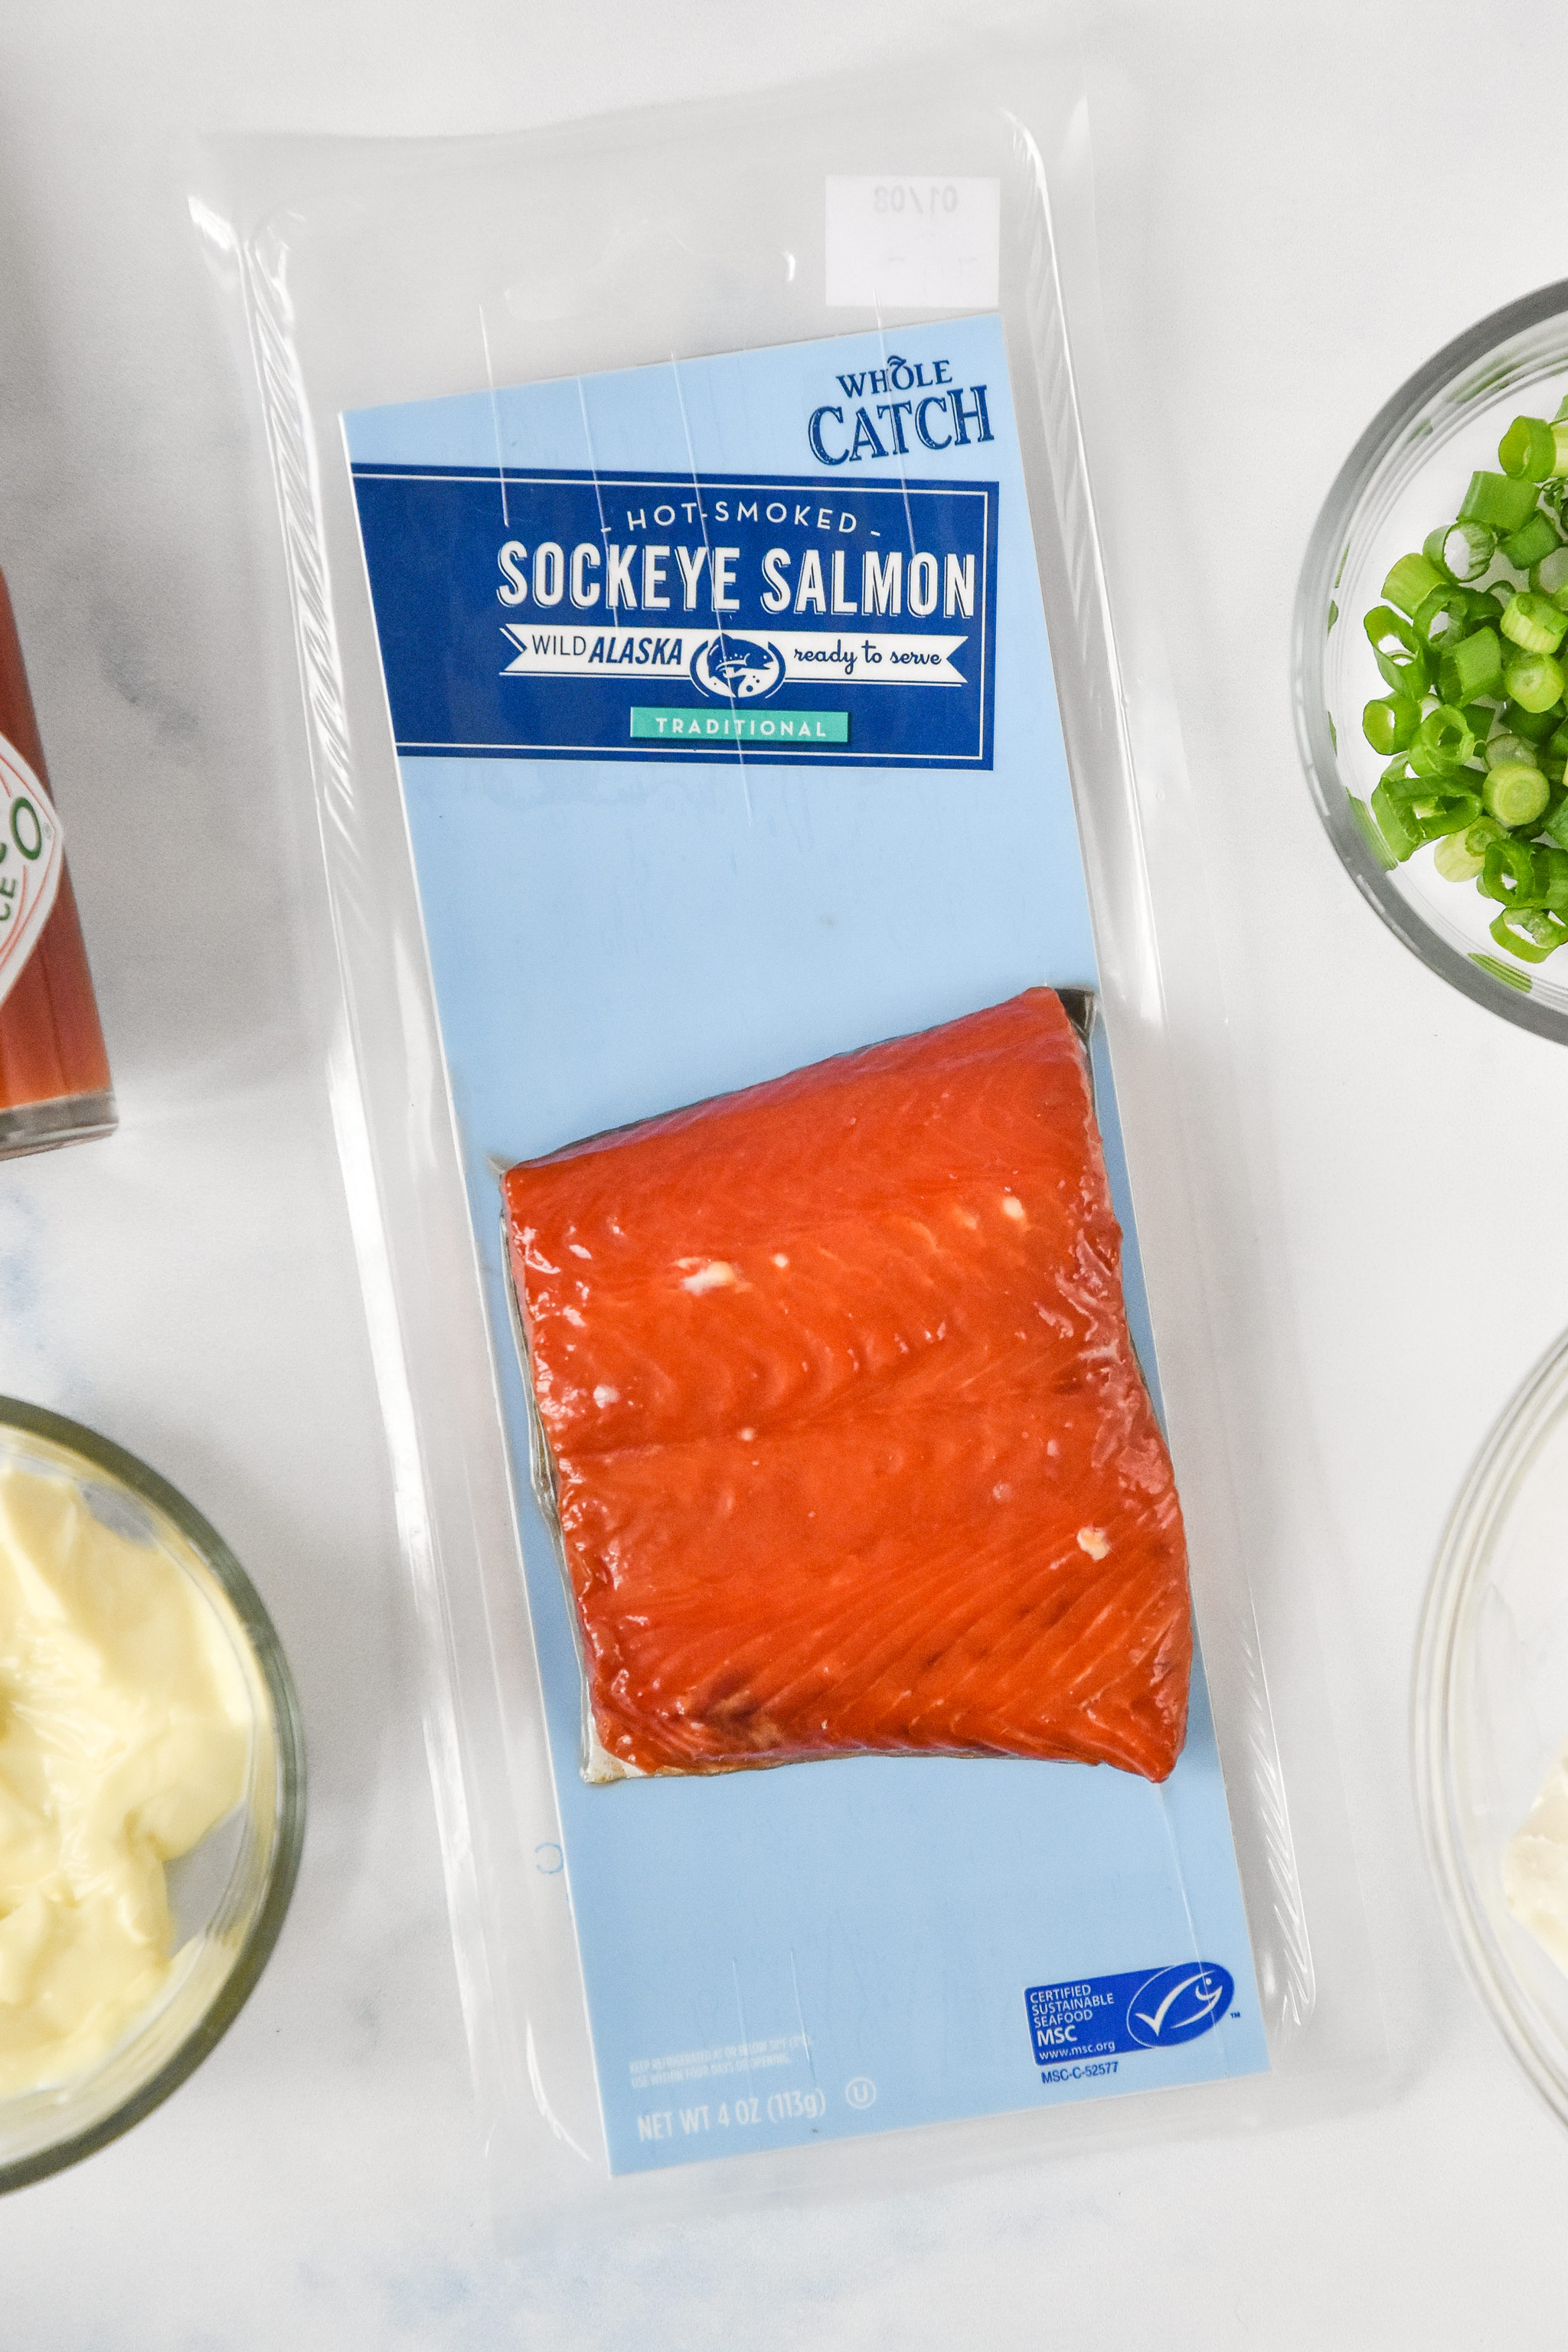 close up of the package of the smoked salmon.